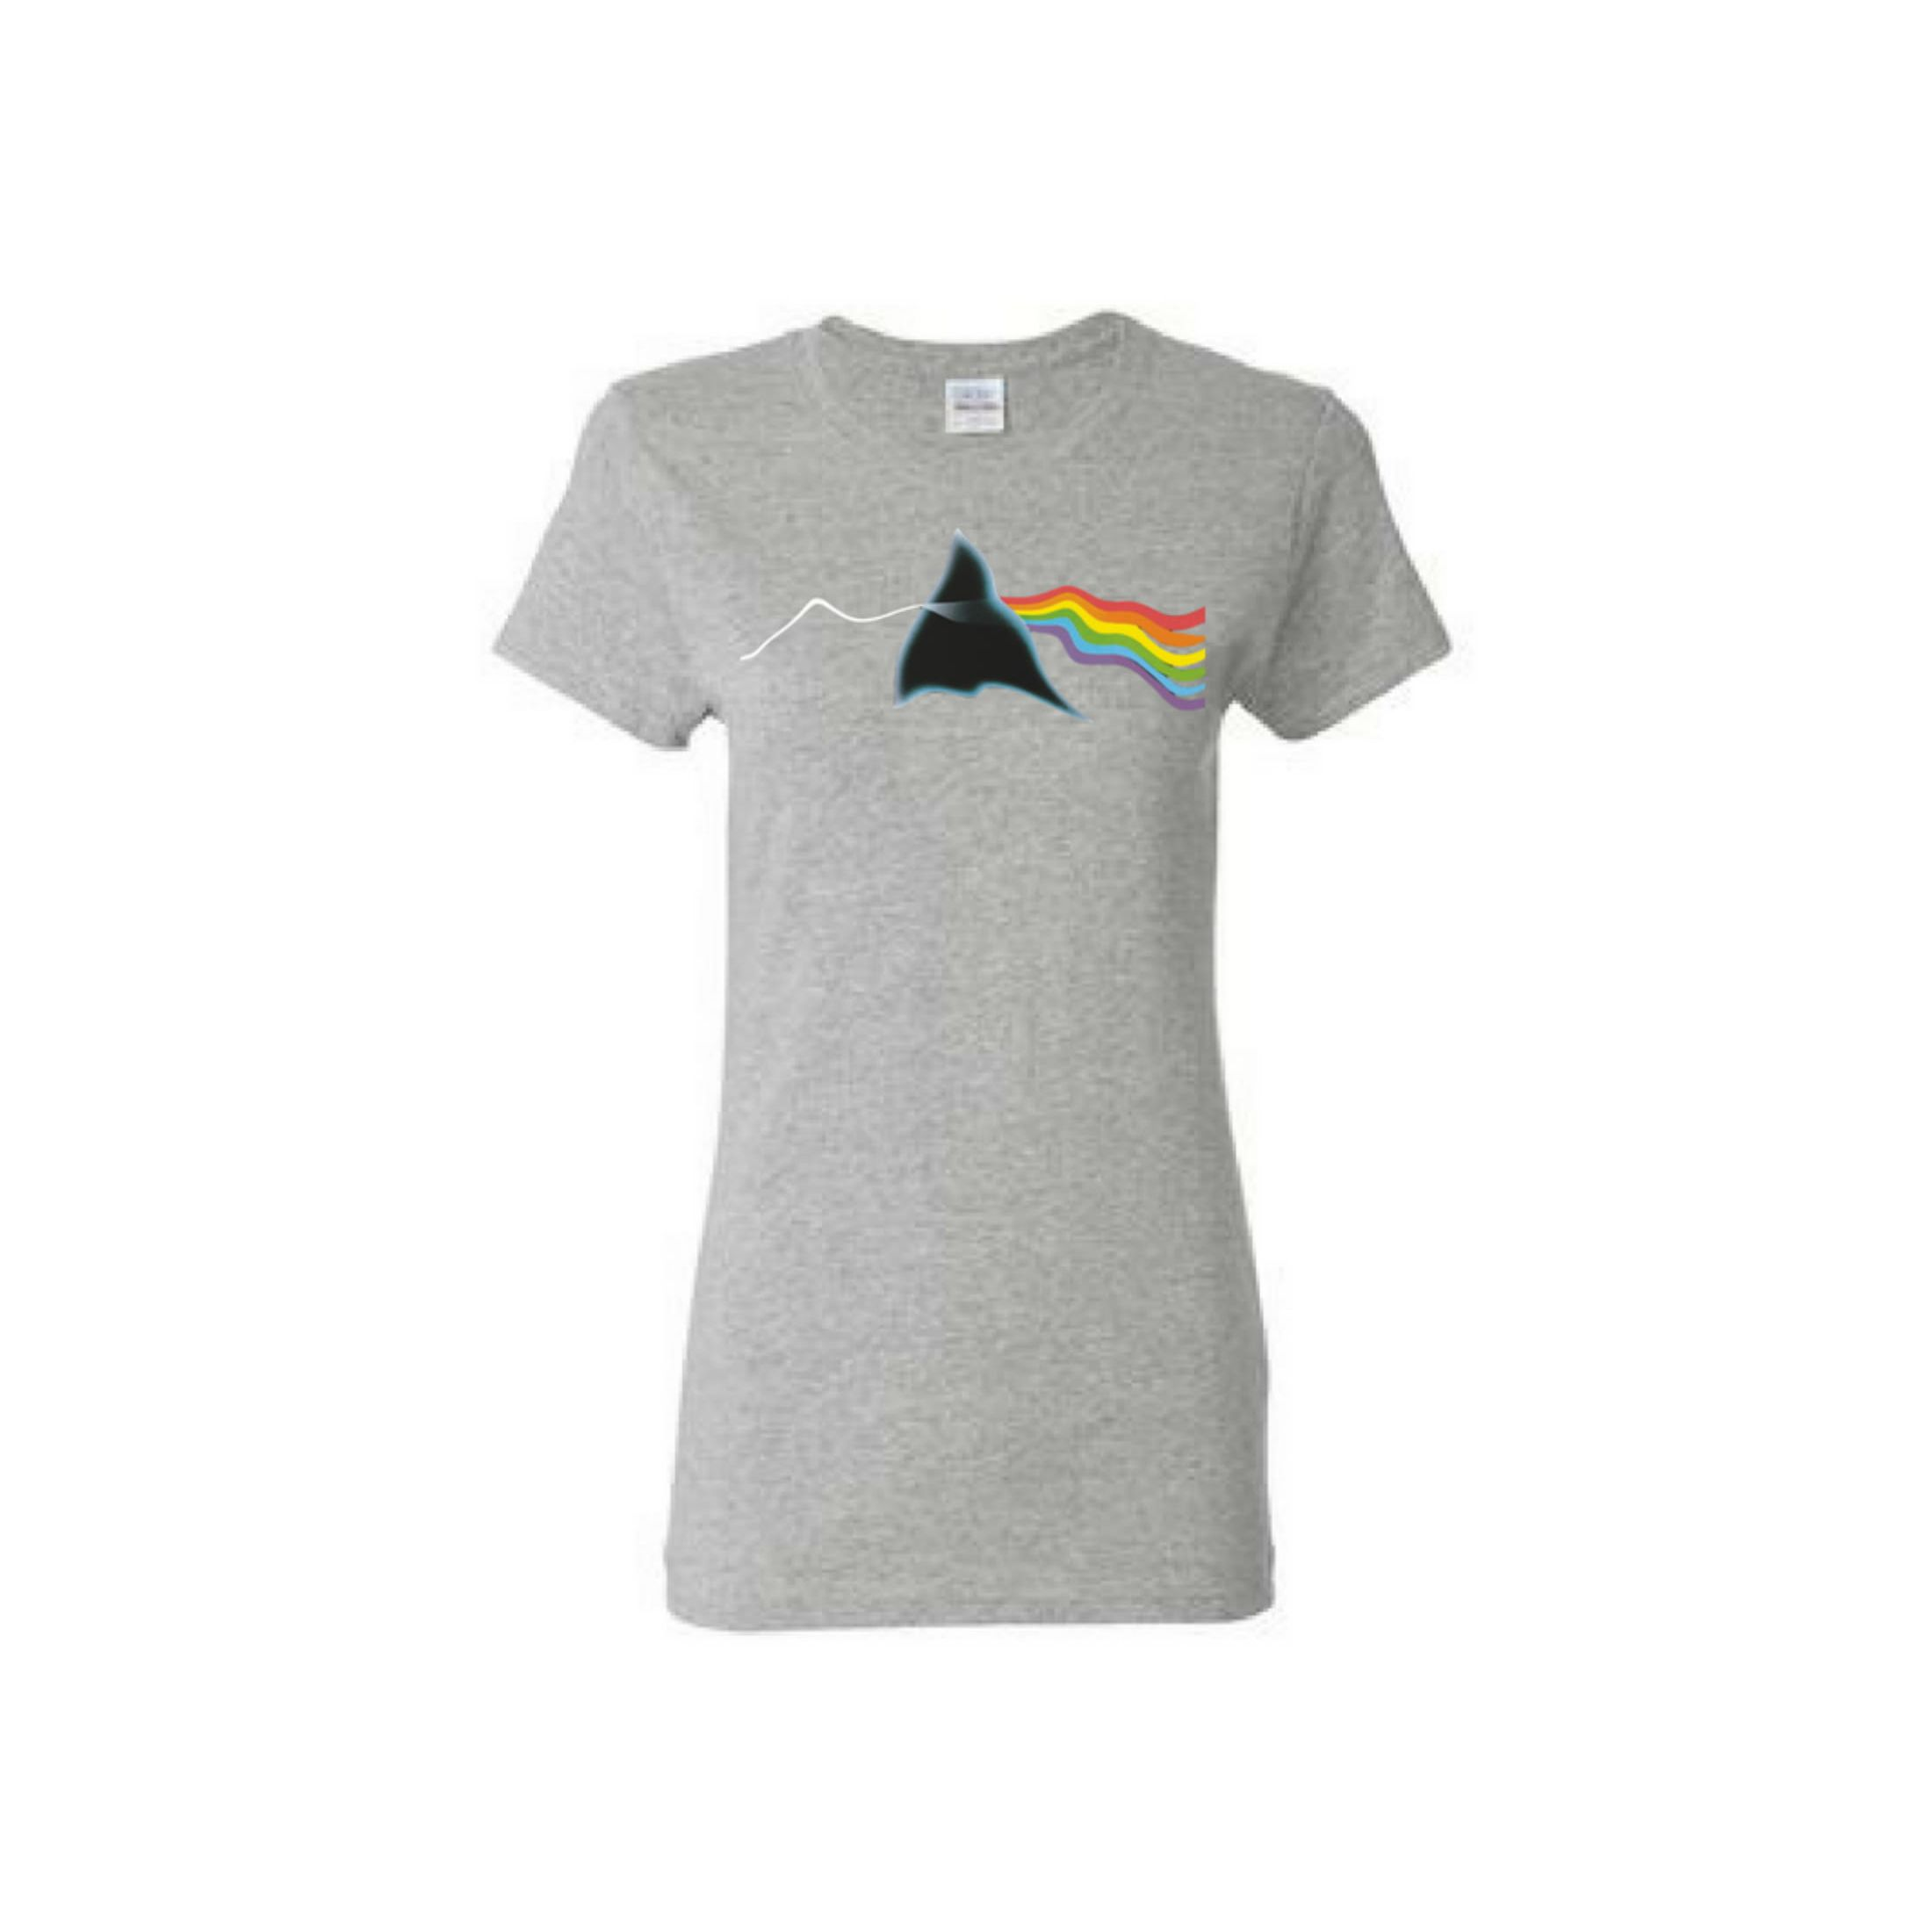 Prism Variations: Women's Distortion T-Shirt